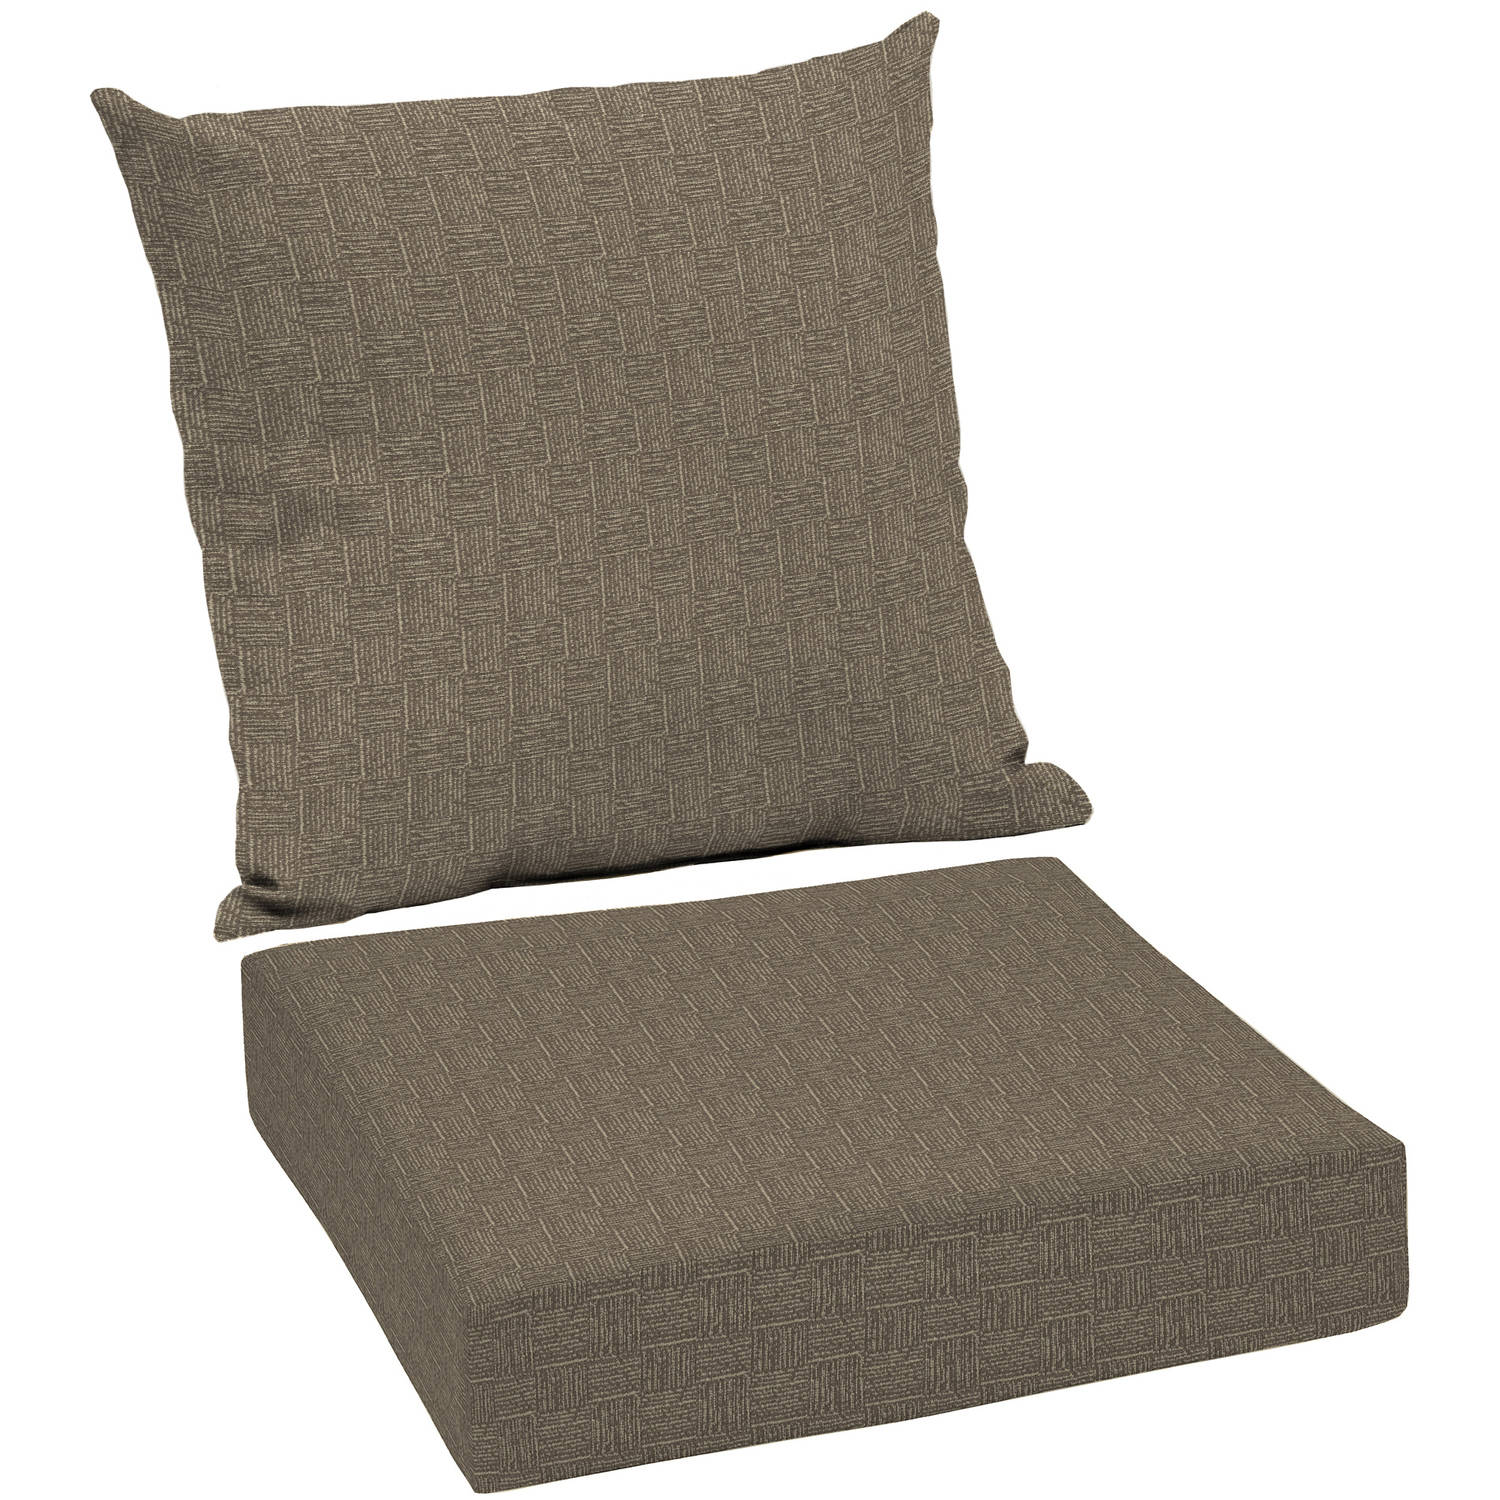 Arden Outdoors Deep Seat Cushion Set for Patio